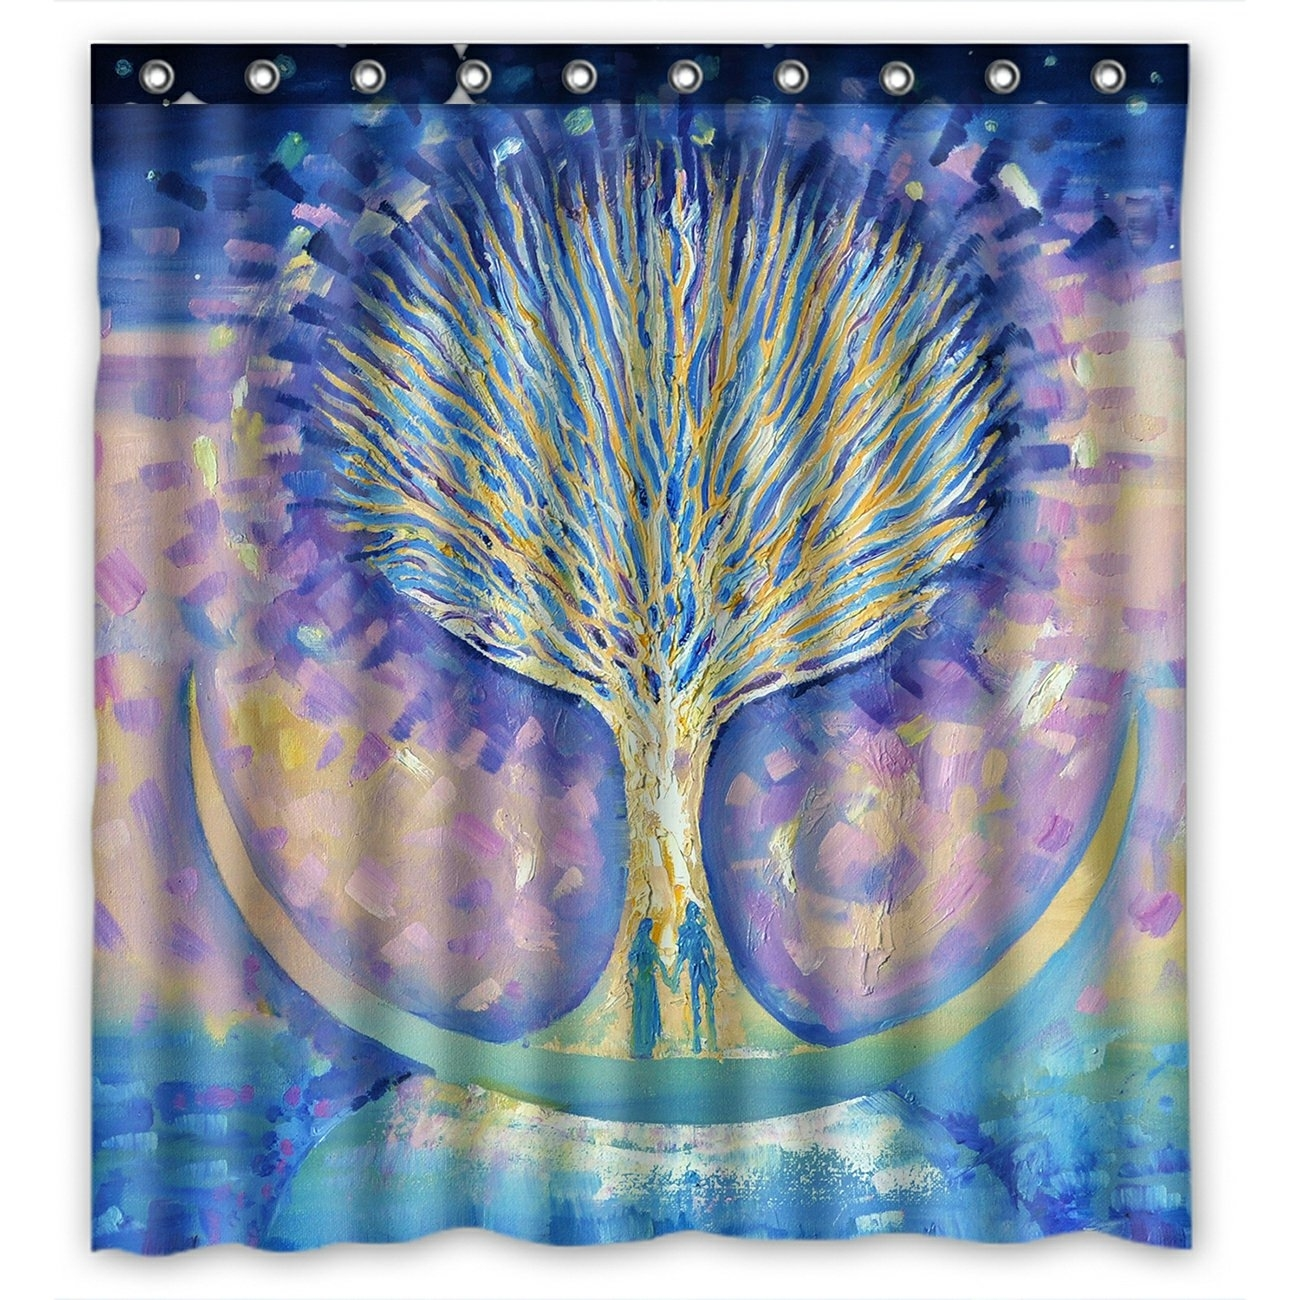 Abstract Shower Curtain, Love Couple on the Moon looking the Tree of Life Shower Curtain 66x72 inch